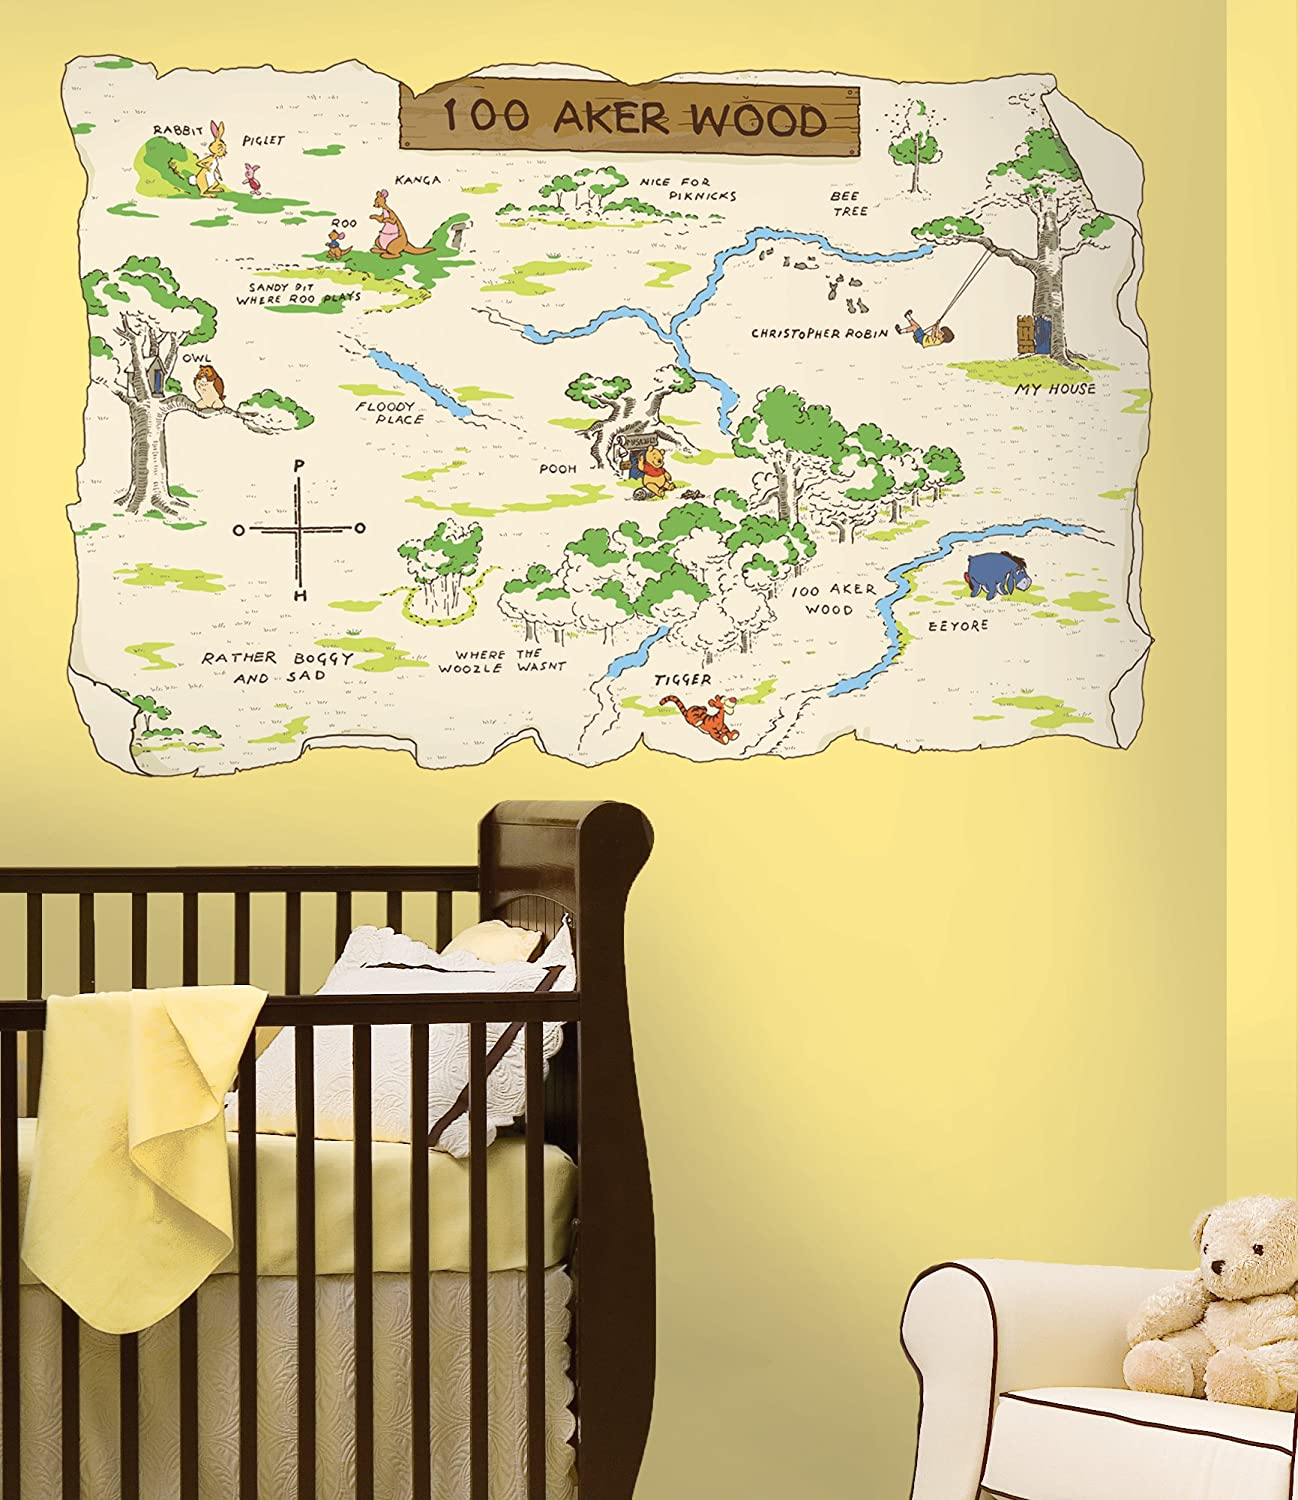 Amazon.com: Roommates Rmk1502Slm Pooh And Friends 100 Aker Wood Map ...